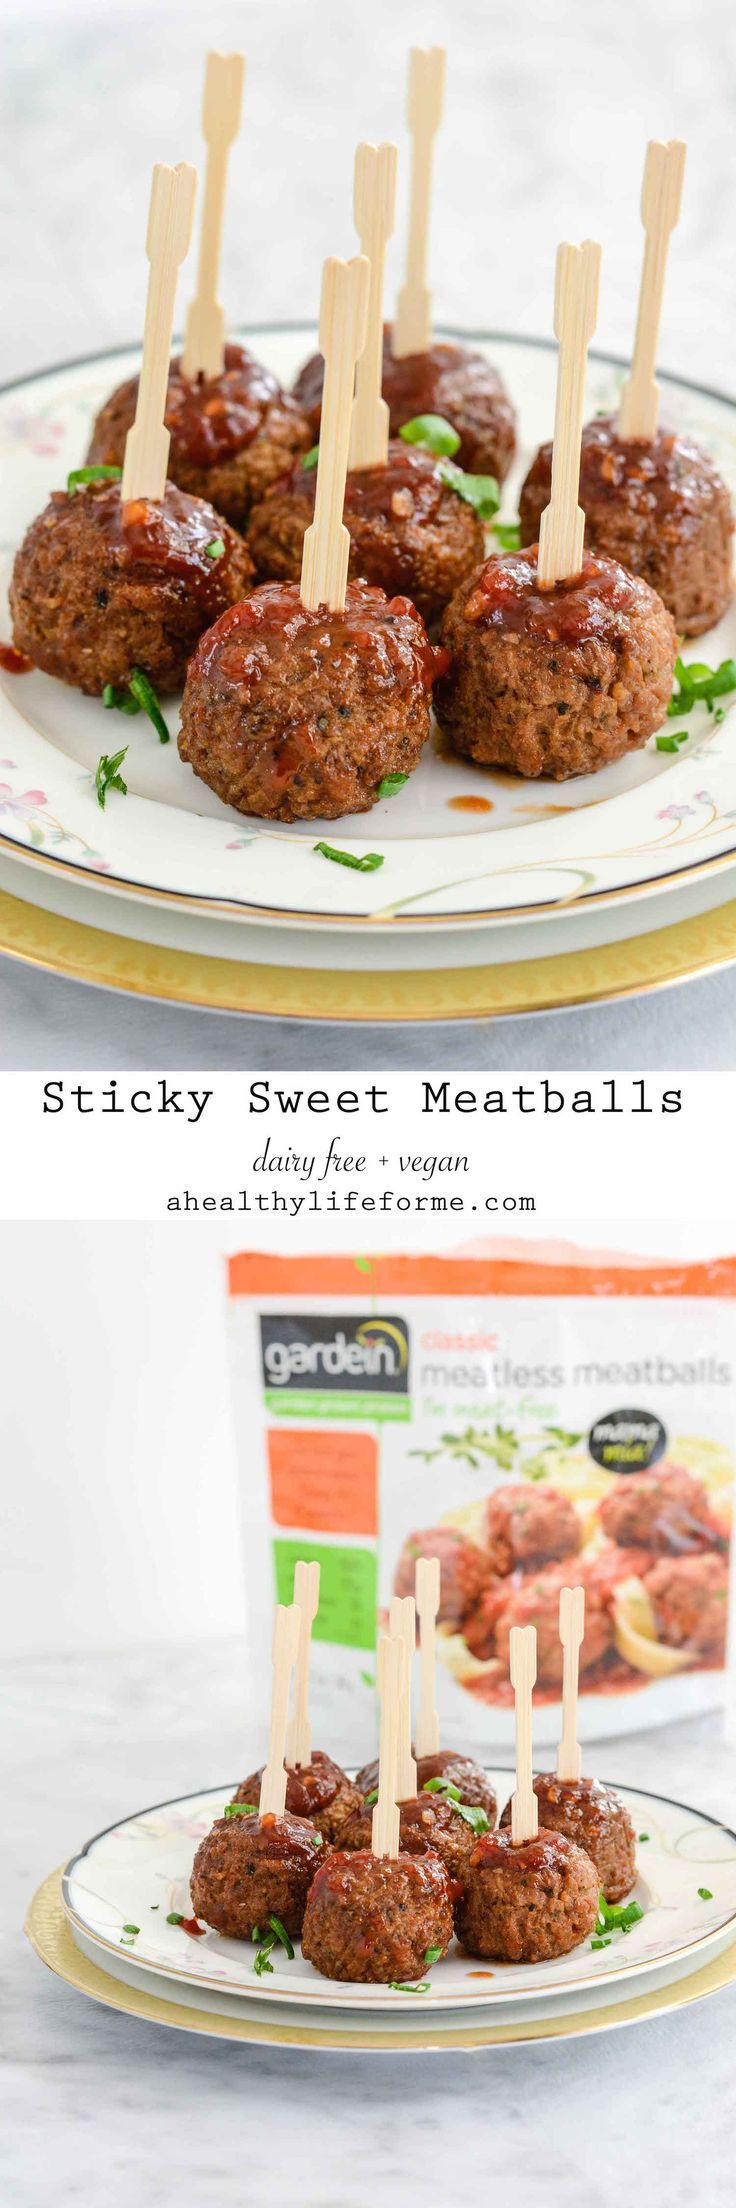 Sticky Sweet Meatballs are the perfect dinner, snack or appetizer.  Oh and don't forget they are dairy free and vegan… yep vegan.  No meat in these meatballs, but no one will ever know it thanks to Gardein Classic Meatless Meatballs. - A Healthy Life For Me @gardein #meetchef